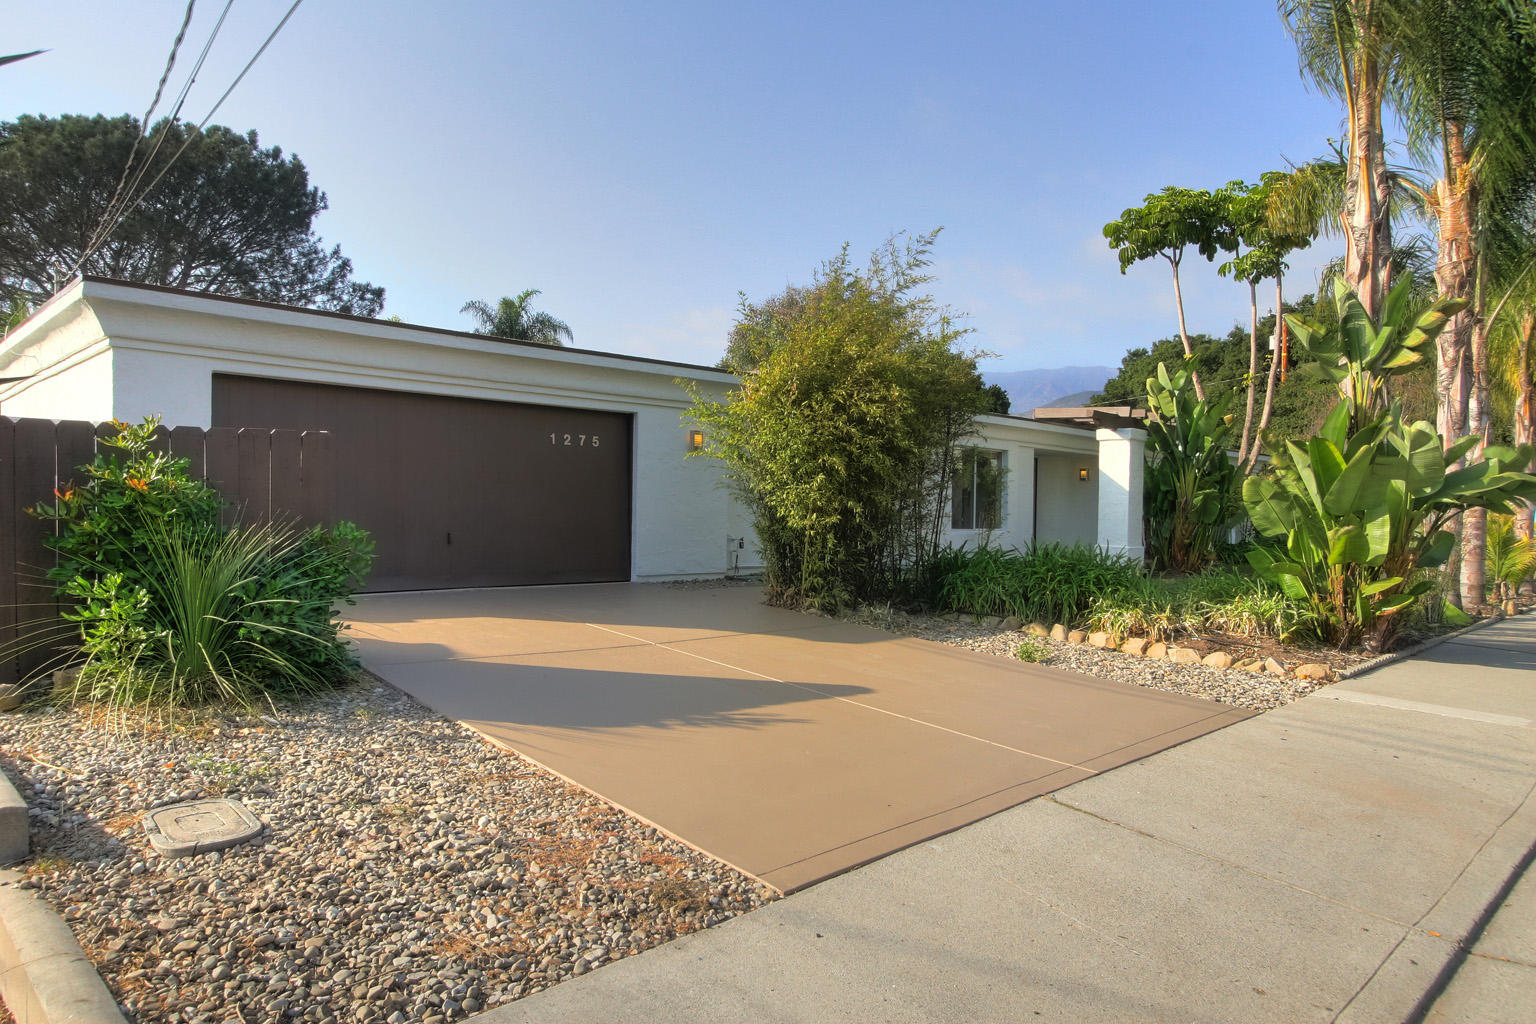 Property photo for 1275 Vallecito Rd Carpinteria, California 93013 - 13-3409